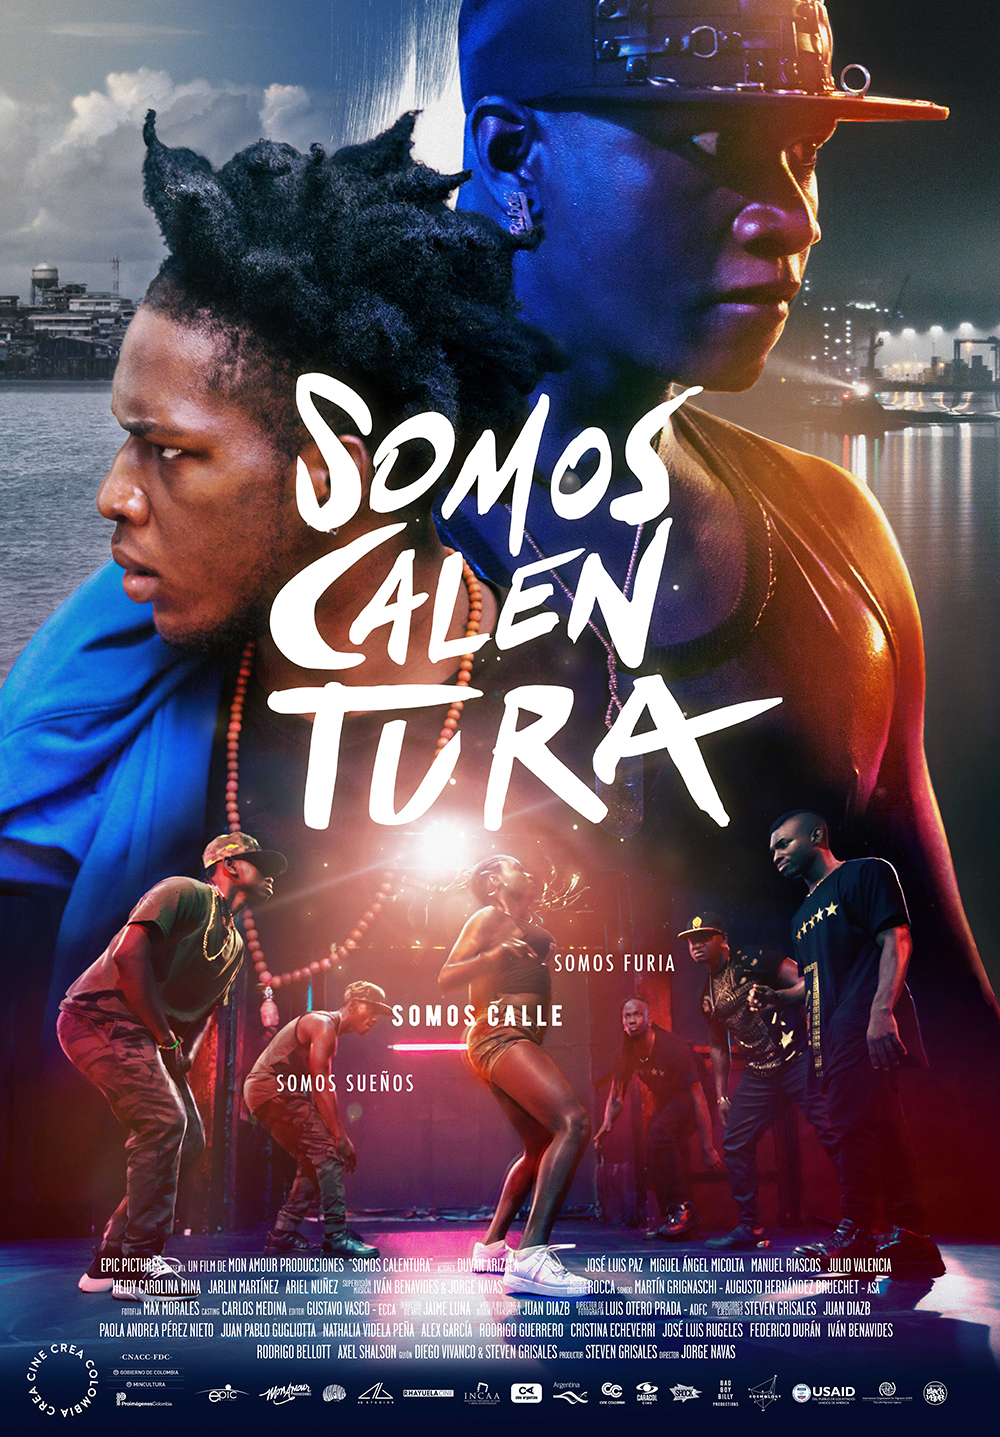 """Somos Calentura(We Are The Heat) - by Kathia WoodsLatin America hasn't always done an excellent job of representation when it comes to Afro-Latinos.Colombia whose two most notable celebrities are Shakira, and Sofia Vergara has the second largest Afro population in South America. So naturally when tourist travel to Colombia, they are somewhat surprised to notice that the average Colombian doesn't resemble those celebrities.""""Somos Calentura"""" is a film that helps chip away at the misrepresentation.This movie tells the story of a group of Afros Colombian friends. Harvey and his three friends are trying to navigate through the everyday struggle of living in Buenaventura. They come from humble beginnings with not many options.Music and dance provide an escape from the harsh reality of life. Dancing is a pivotal part of their escape.Like so many before them, dance could provide a legal escape out of poverty. So when the opportunity presented itself to enter a dance contest with a sizable purse, the boys jump on it.Director Jorge Navas does an excellent job of showing the struggles; however, it's not what """"Somos Calentura"""" primary focus is. Crime and poverty are a reality in Buena Ventura, but it's not what defines this dance crew. They're brothers, brothers that may argue but have each other's back regardless of the situation.Harvey portrayed by first-time actor Duván Arizala is the family man. He has a wife and young child to provide for, unlike his companions he doesn't have the luxury to pursue dance for the sheer job. The stakes are higher for him. If this contest doesn't work out, he's relegated back to a life of meaningless jobs, for him this contest is a risky venture.Not having to face the same challenges his friends don't understand his unwillingness to jump at the chance to enter the contest; hence the road to the championship hits a few snags.This movie is entertaining and introduces us to some new and much-needed talent. I enjoyed the dance sequences in this fi"""